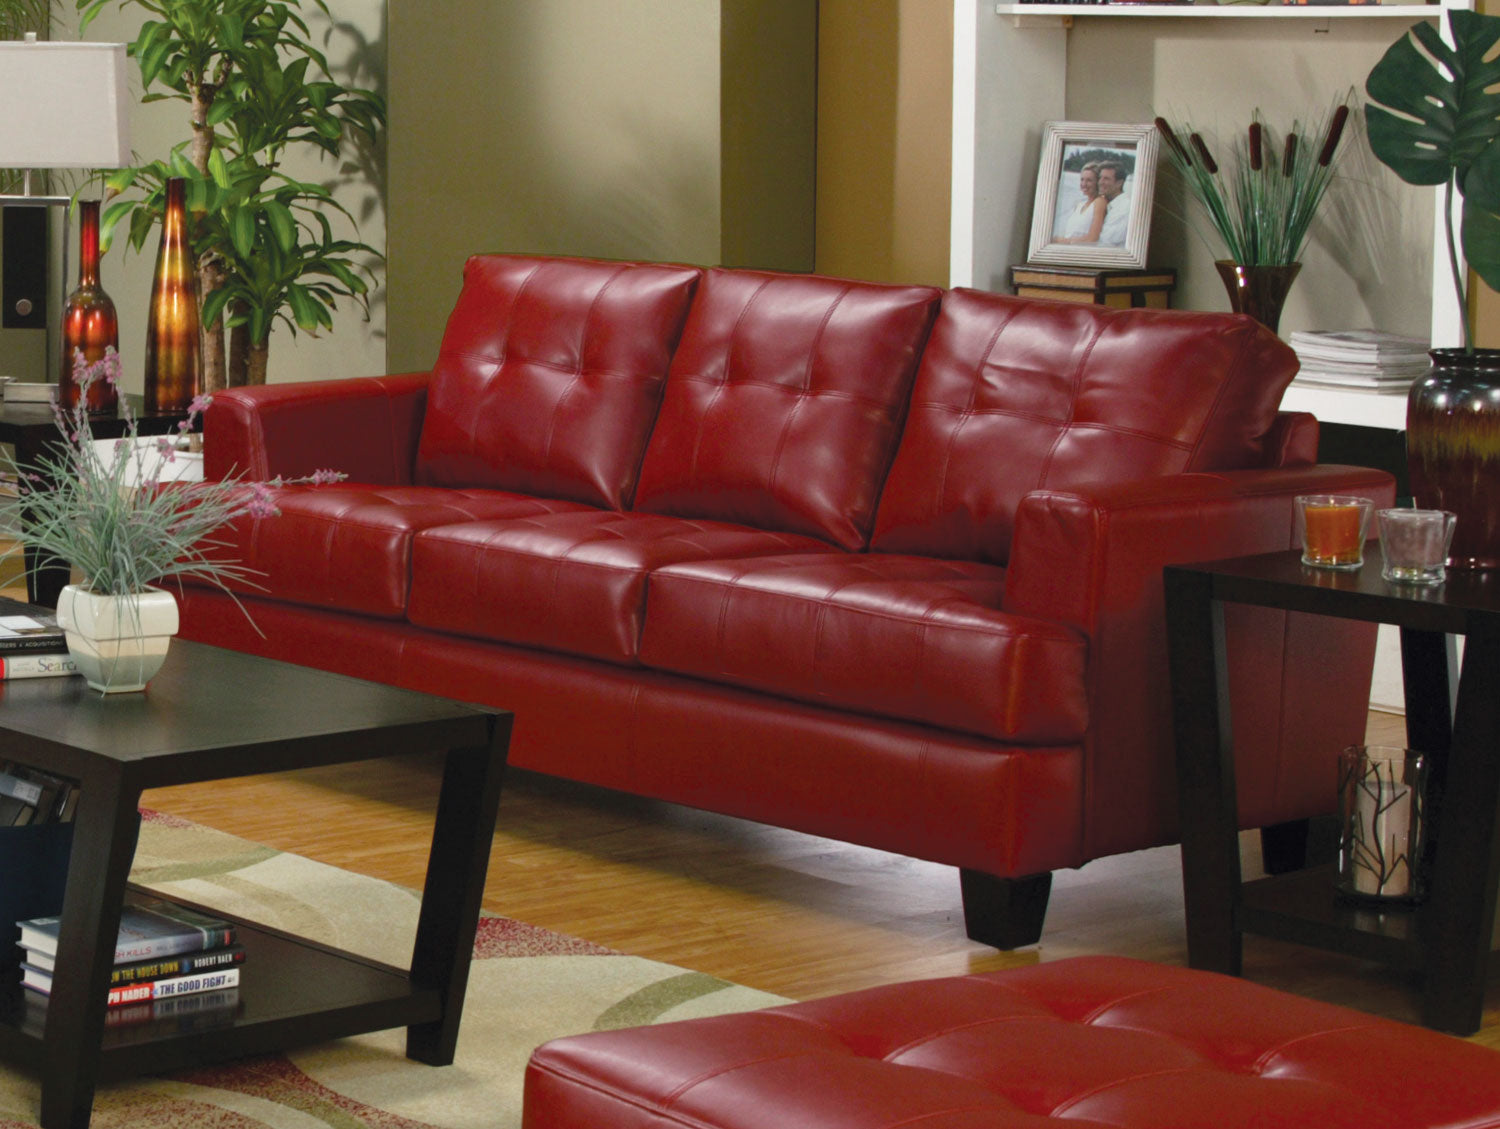 Red Bonded Leather Living Room Set – Best for Less Mattress ...